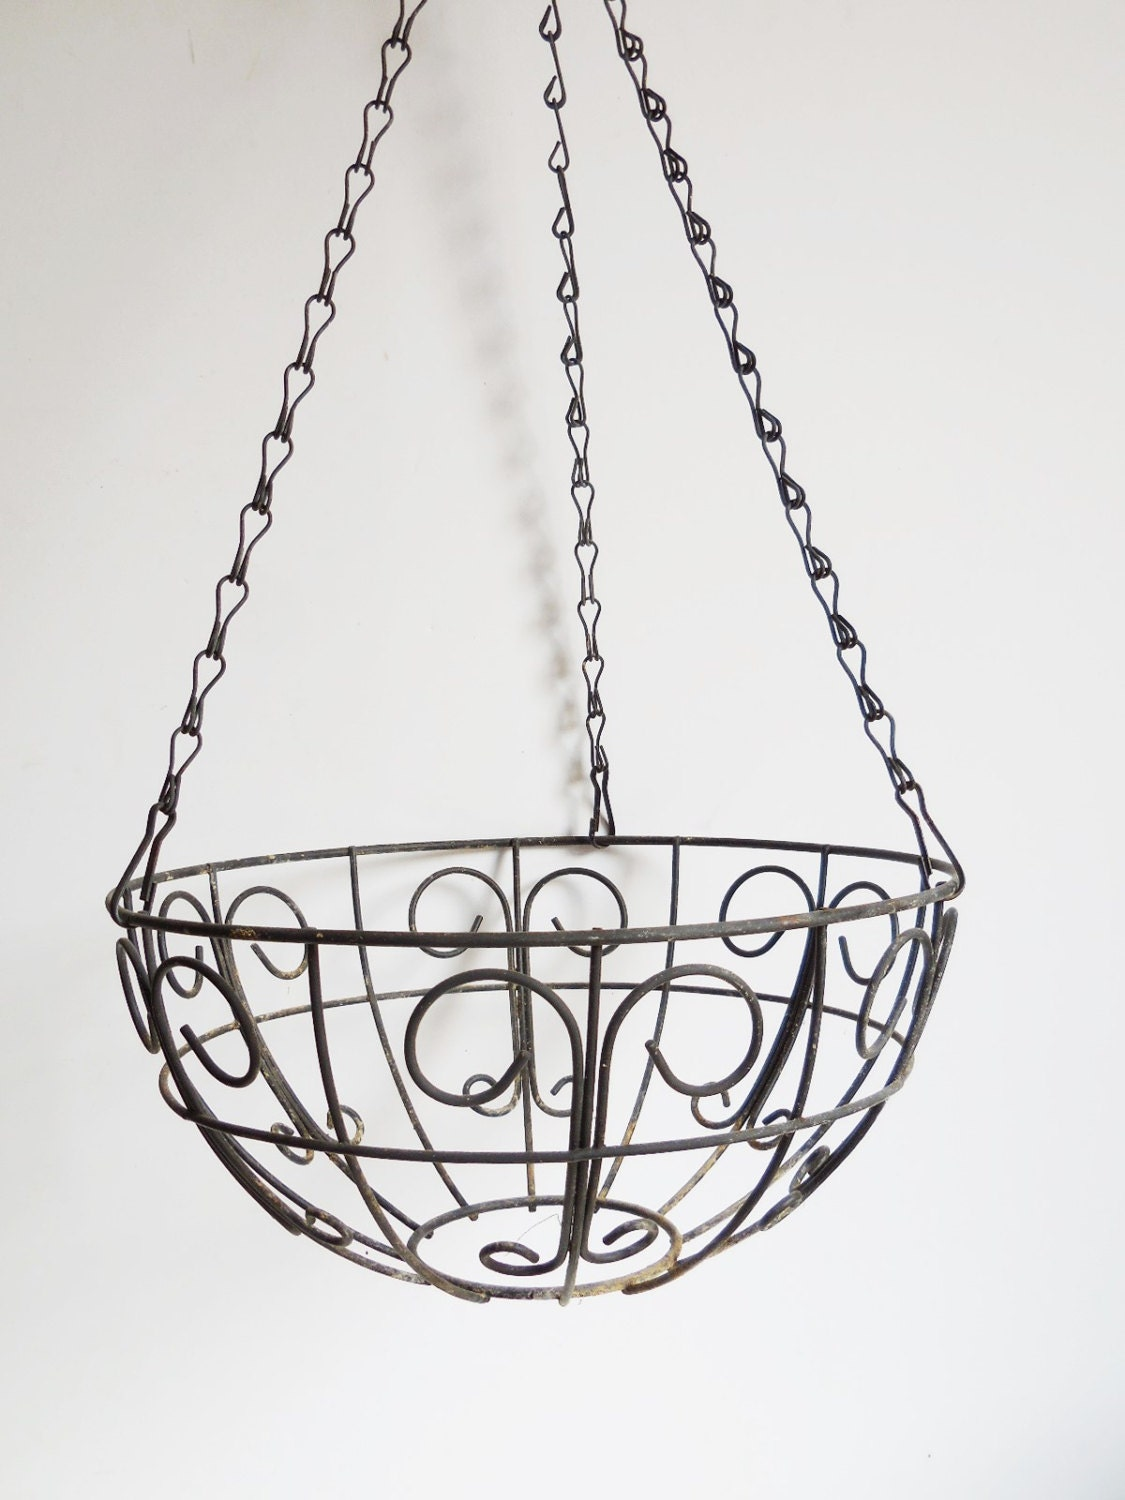 Metal Flower Hanging Baskets : Vintage hanging basket black rustic metal flower planter